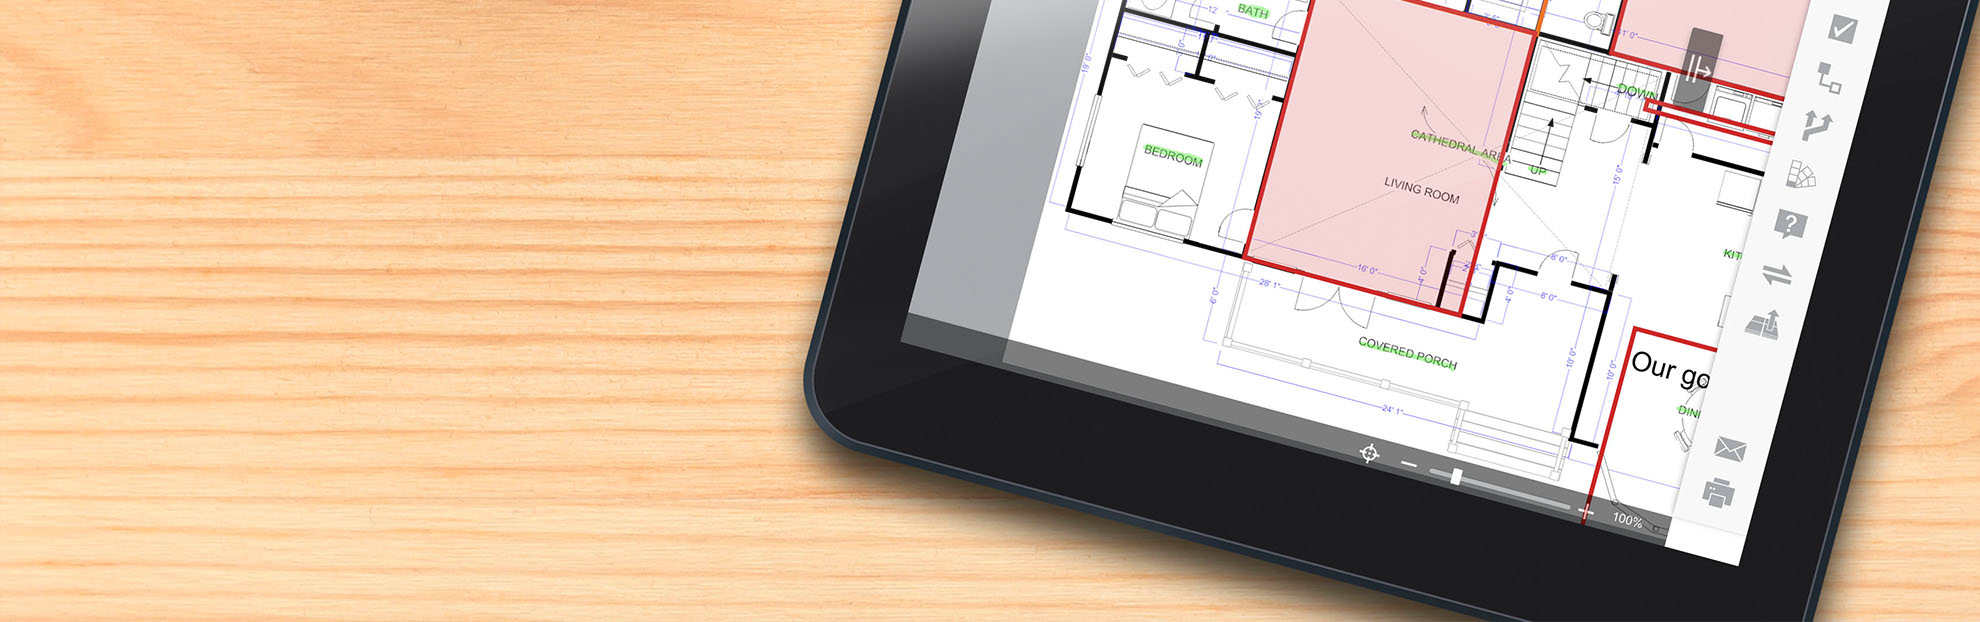 UDA ConstructionOnline Engineers and Architects Redline Drawing Markup and Planroom